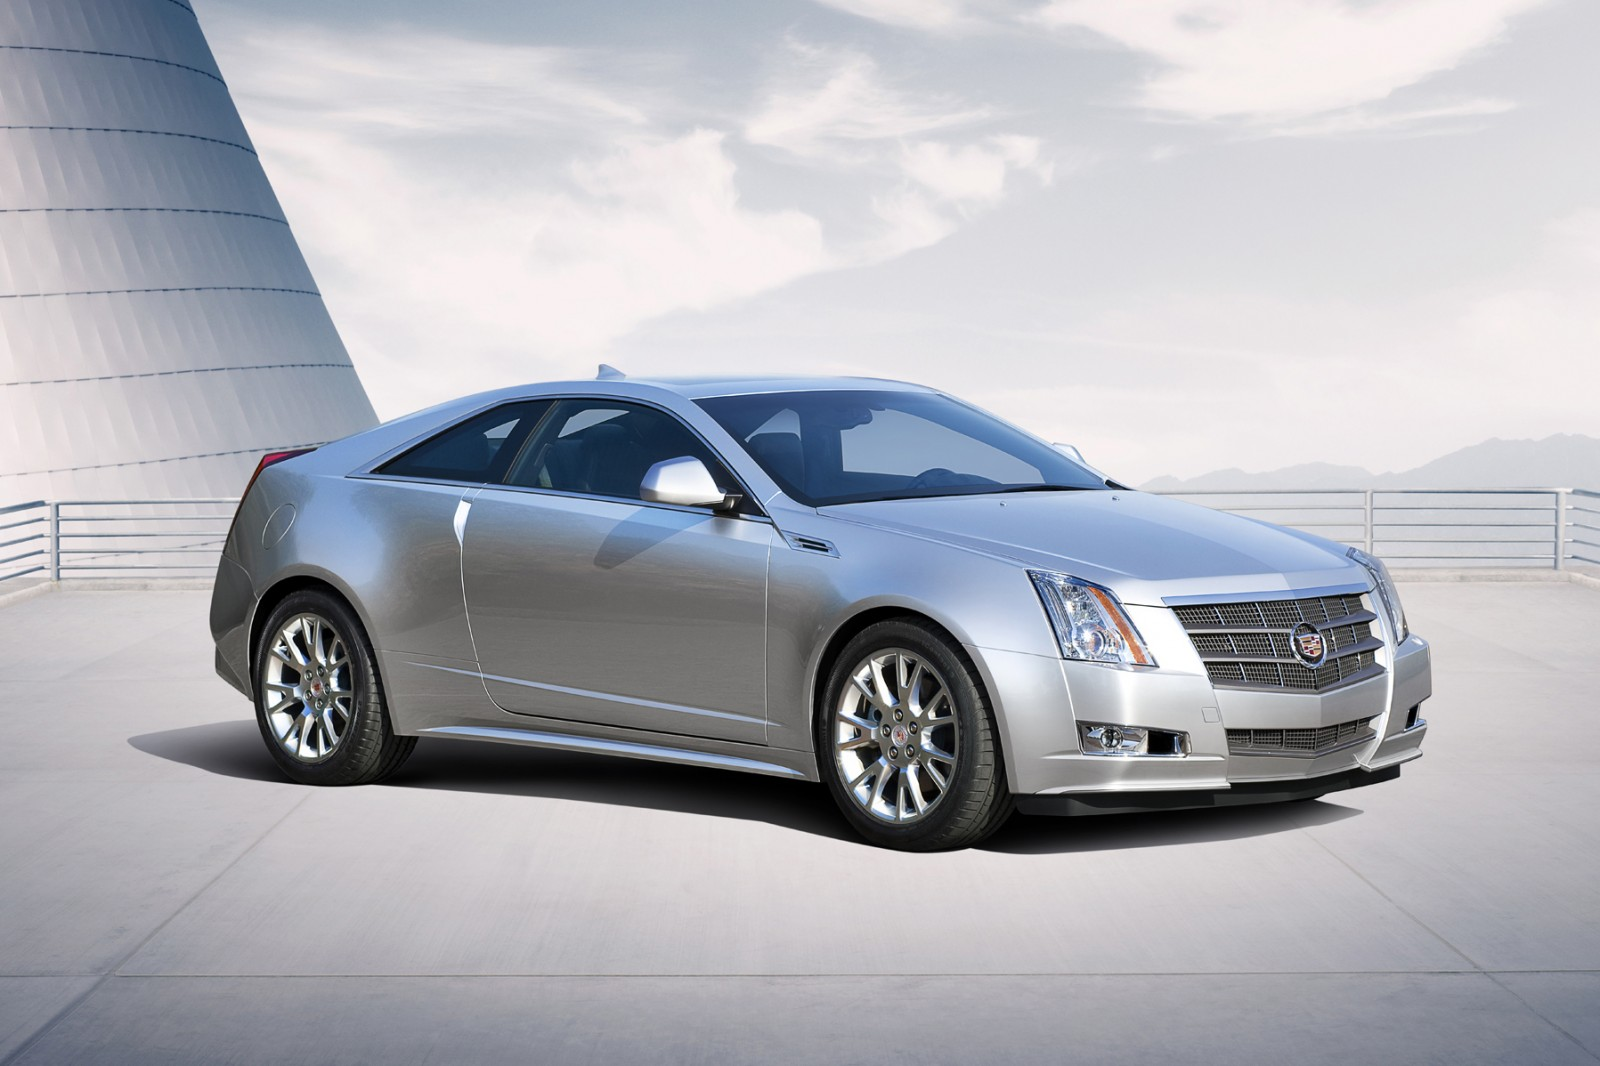 new cadillac the in features equipment nadaguides previews car cars standard ats preview cts interior